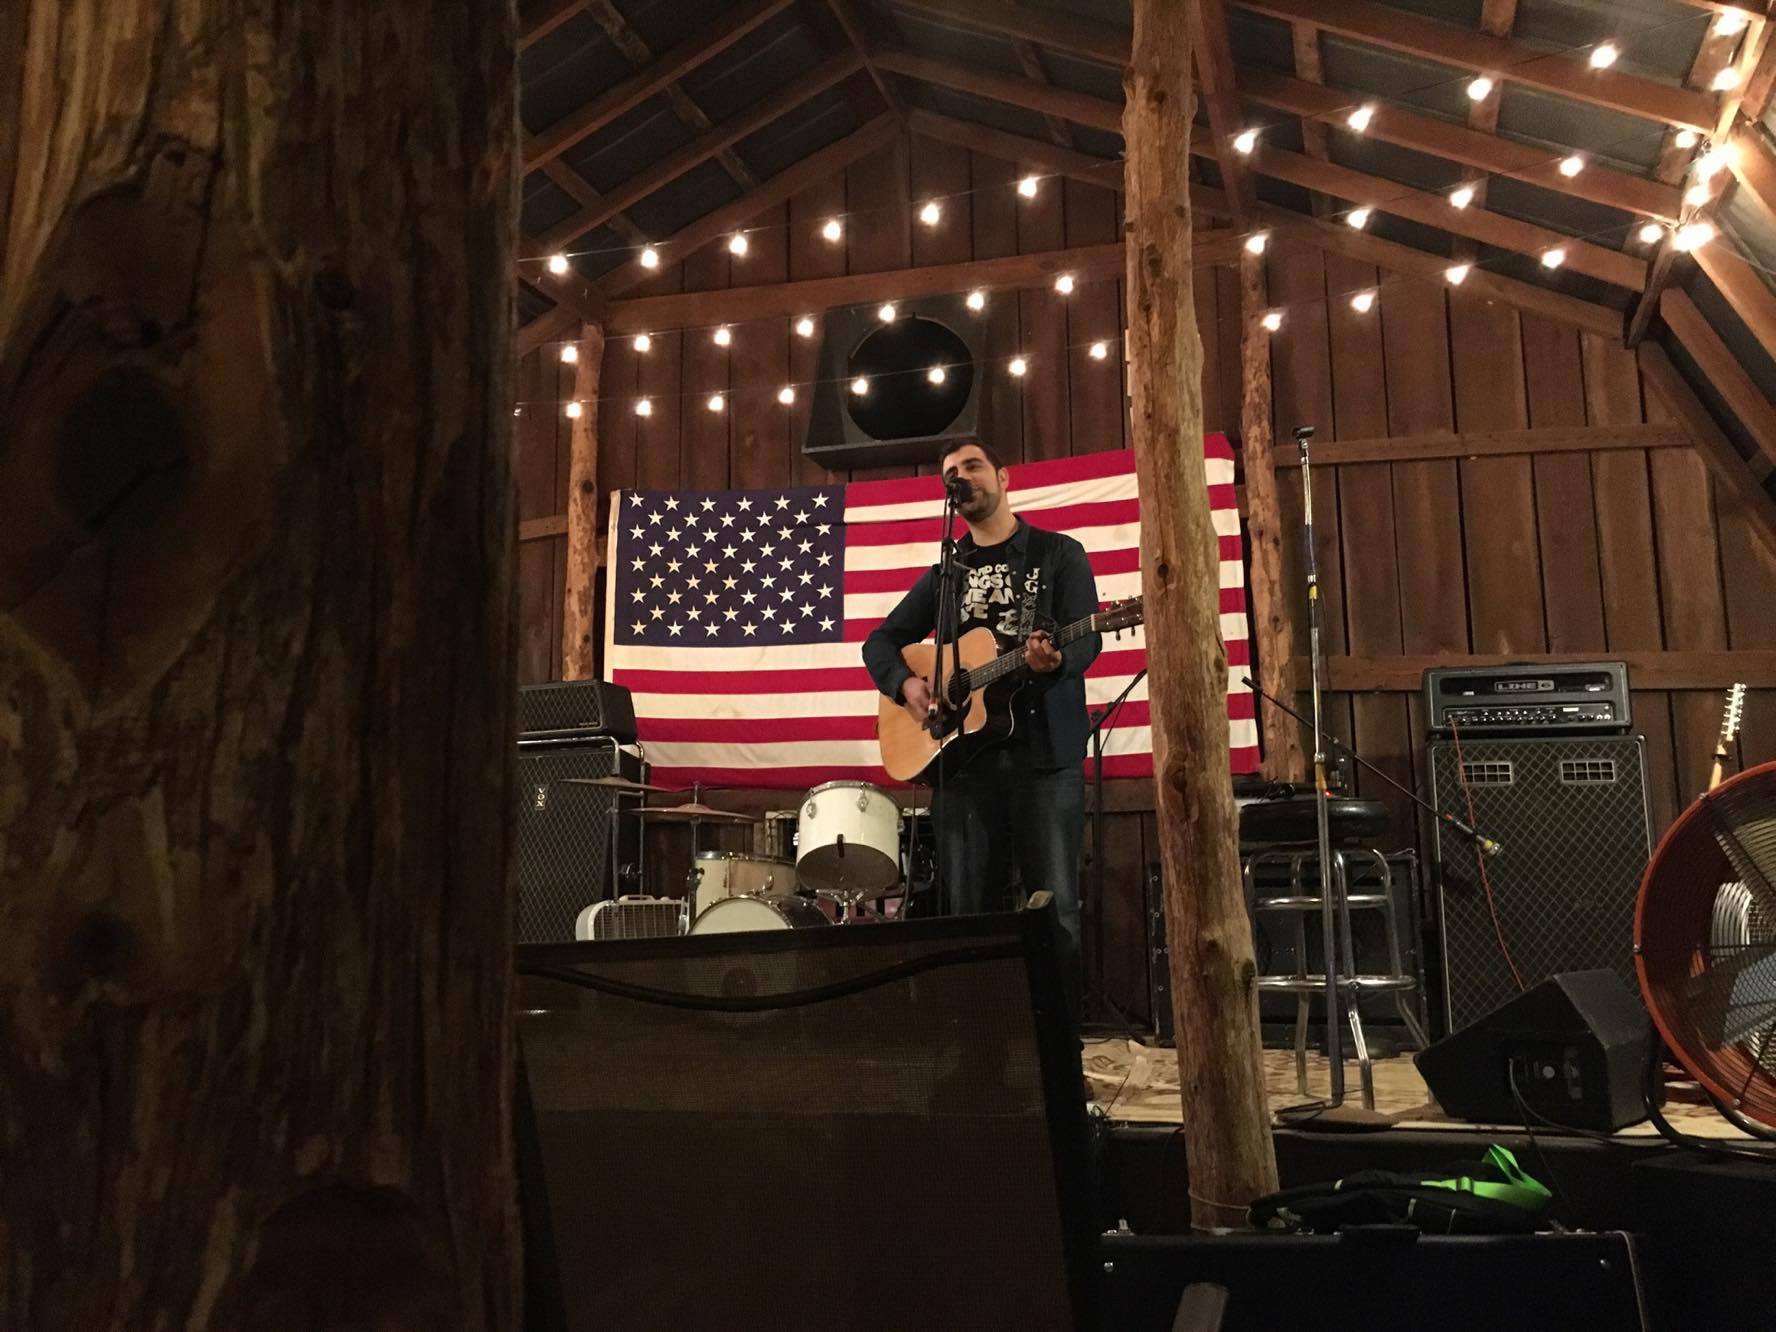 Live at the Blue Bear Barn in Antioch, TN